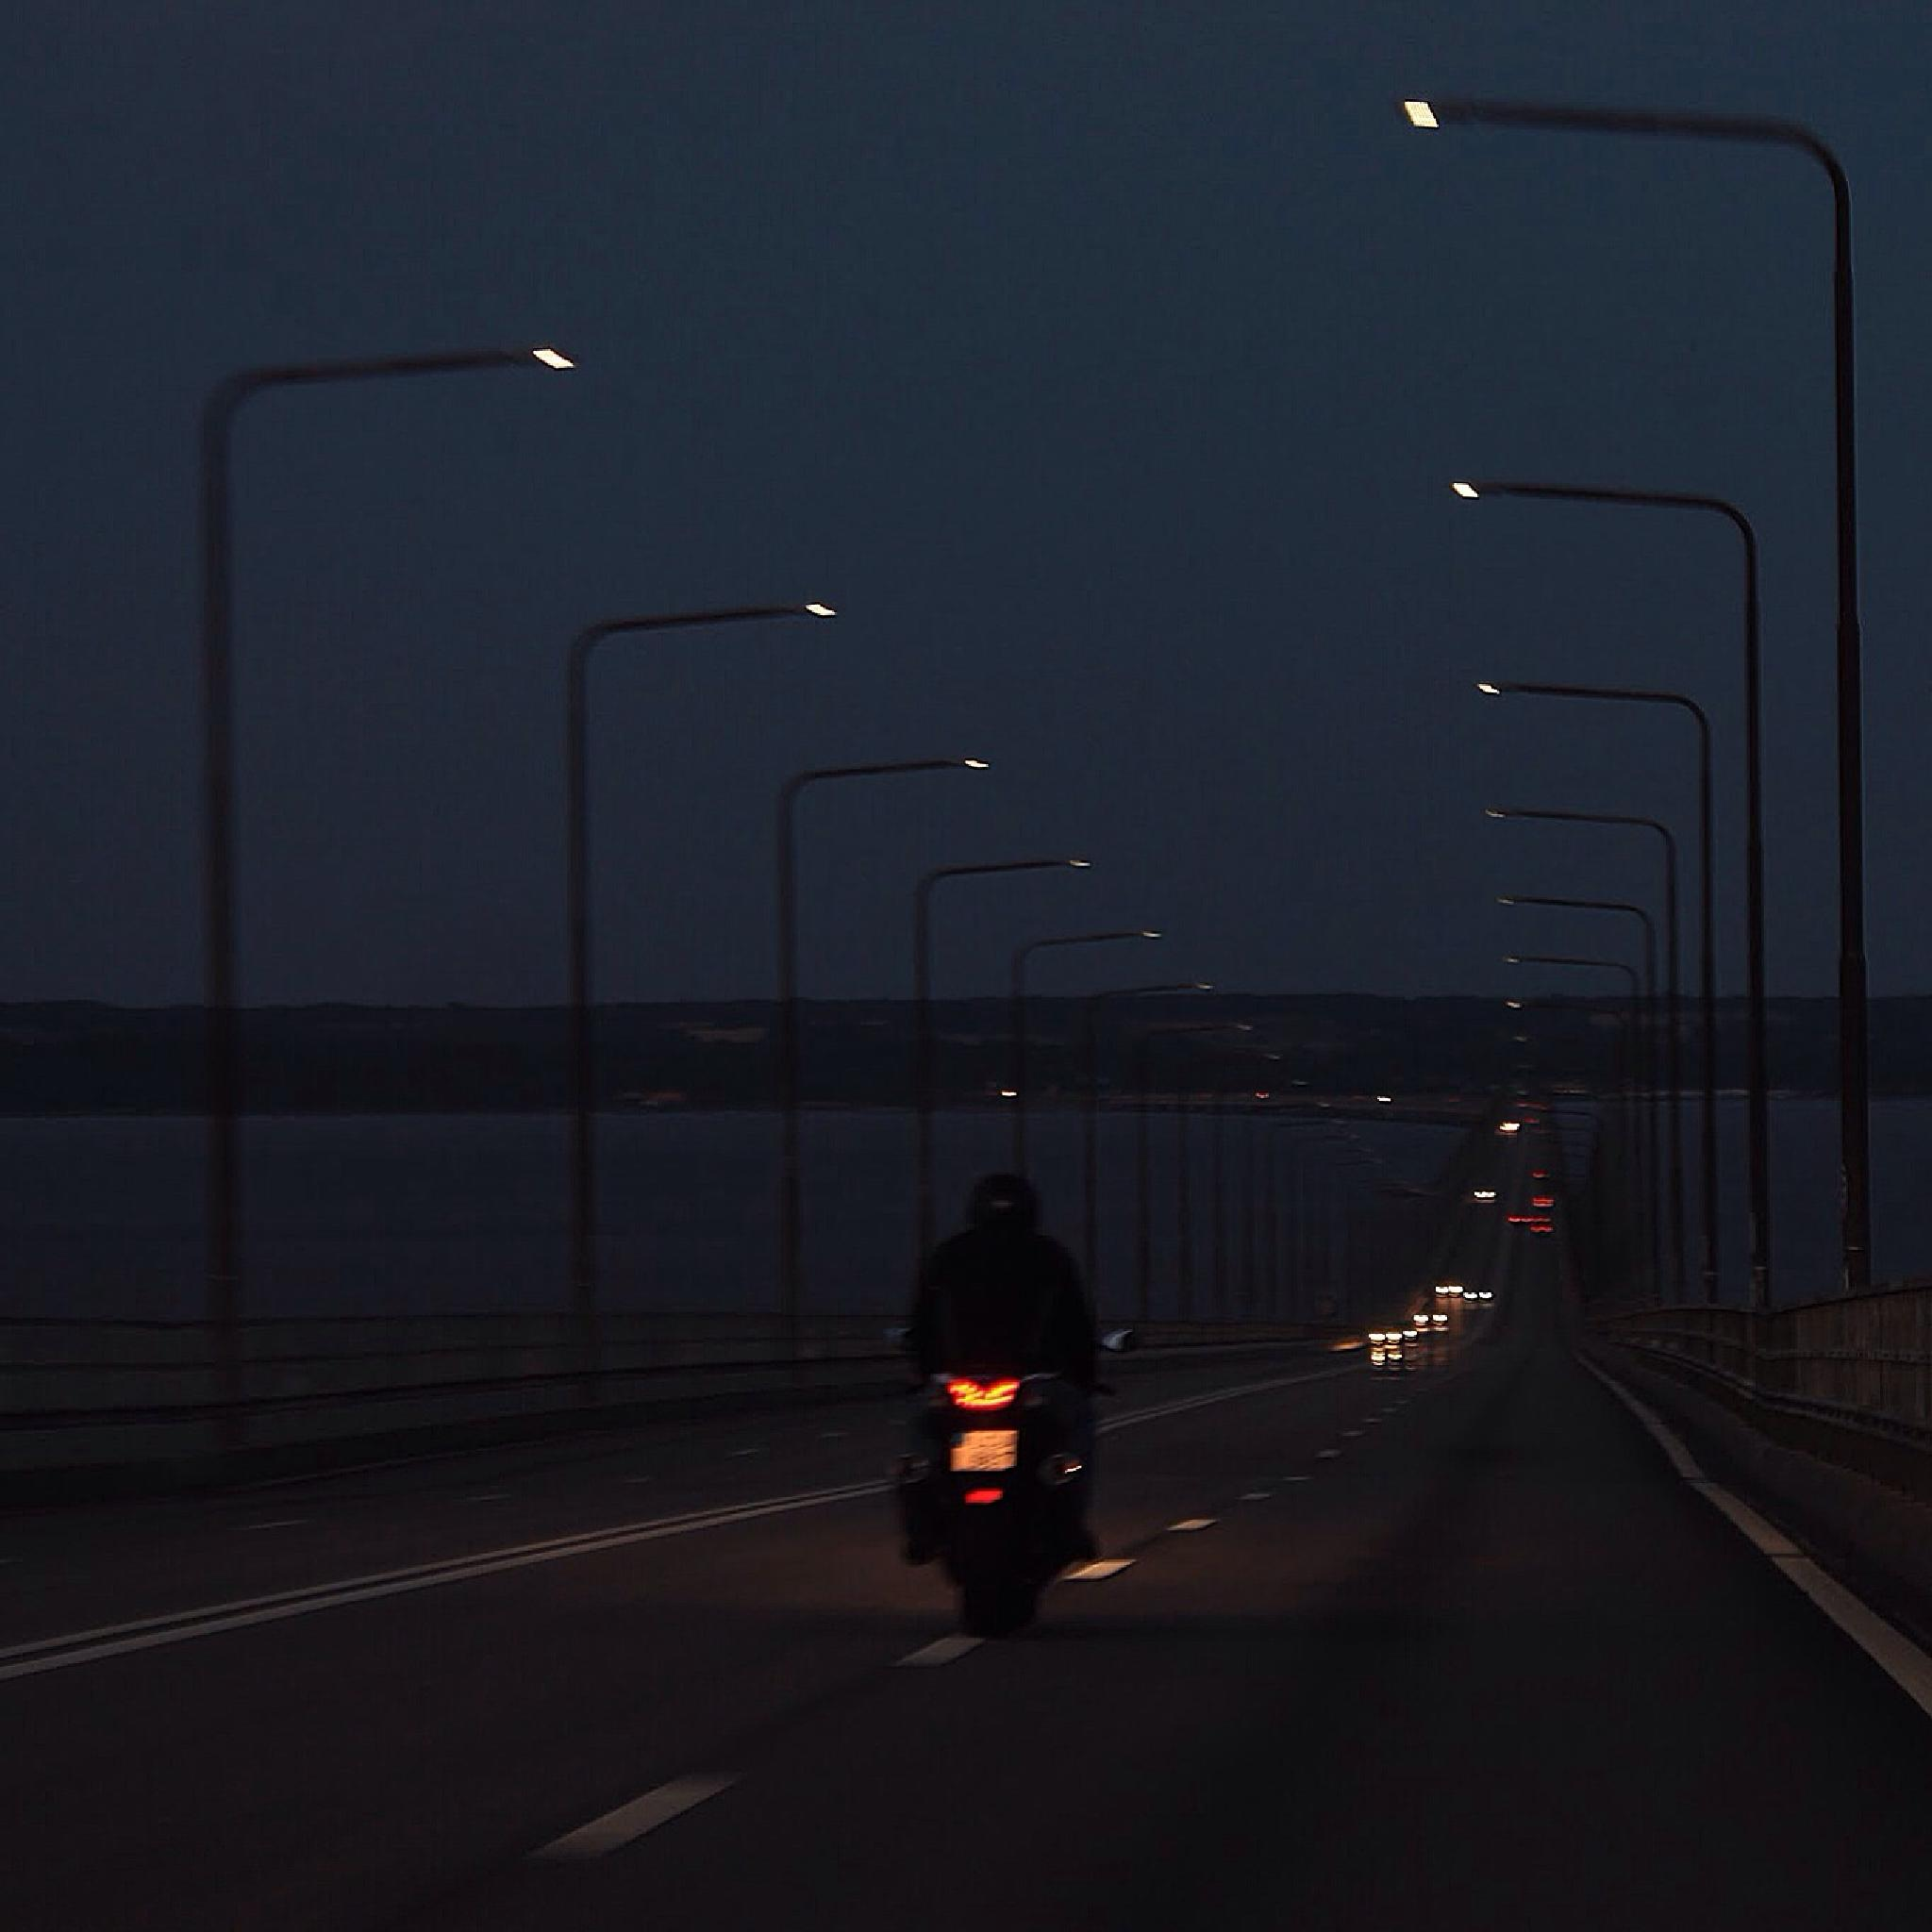 Ölandsbron by night by Beccap1985